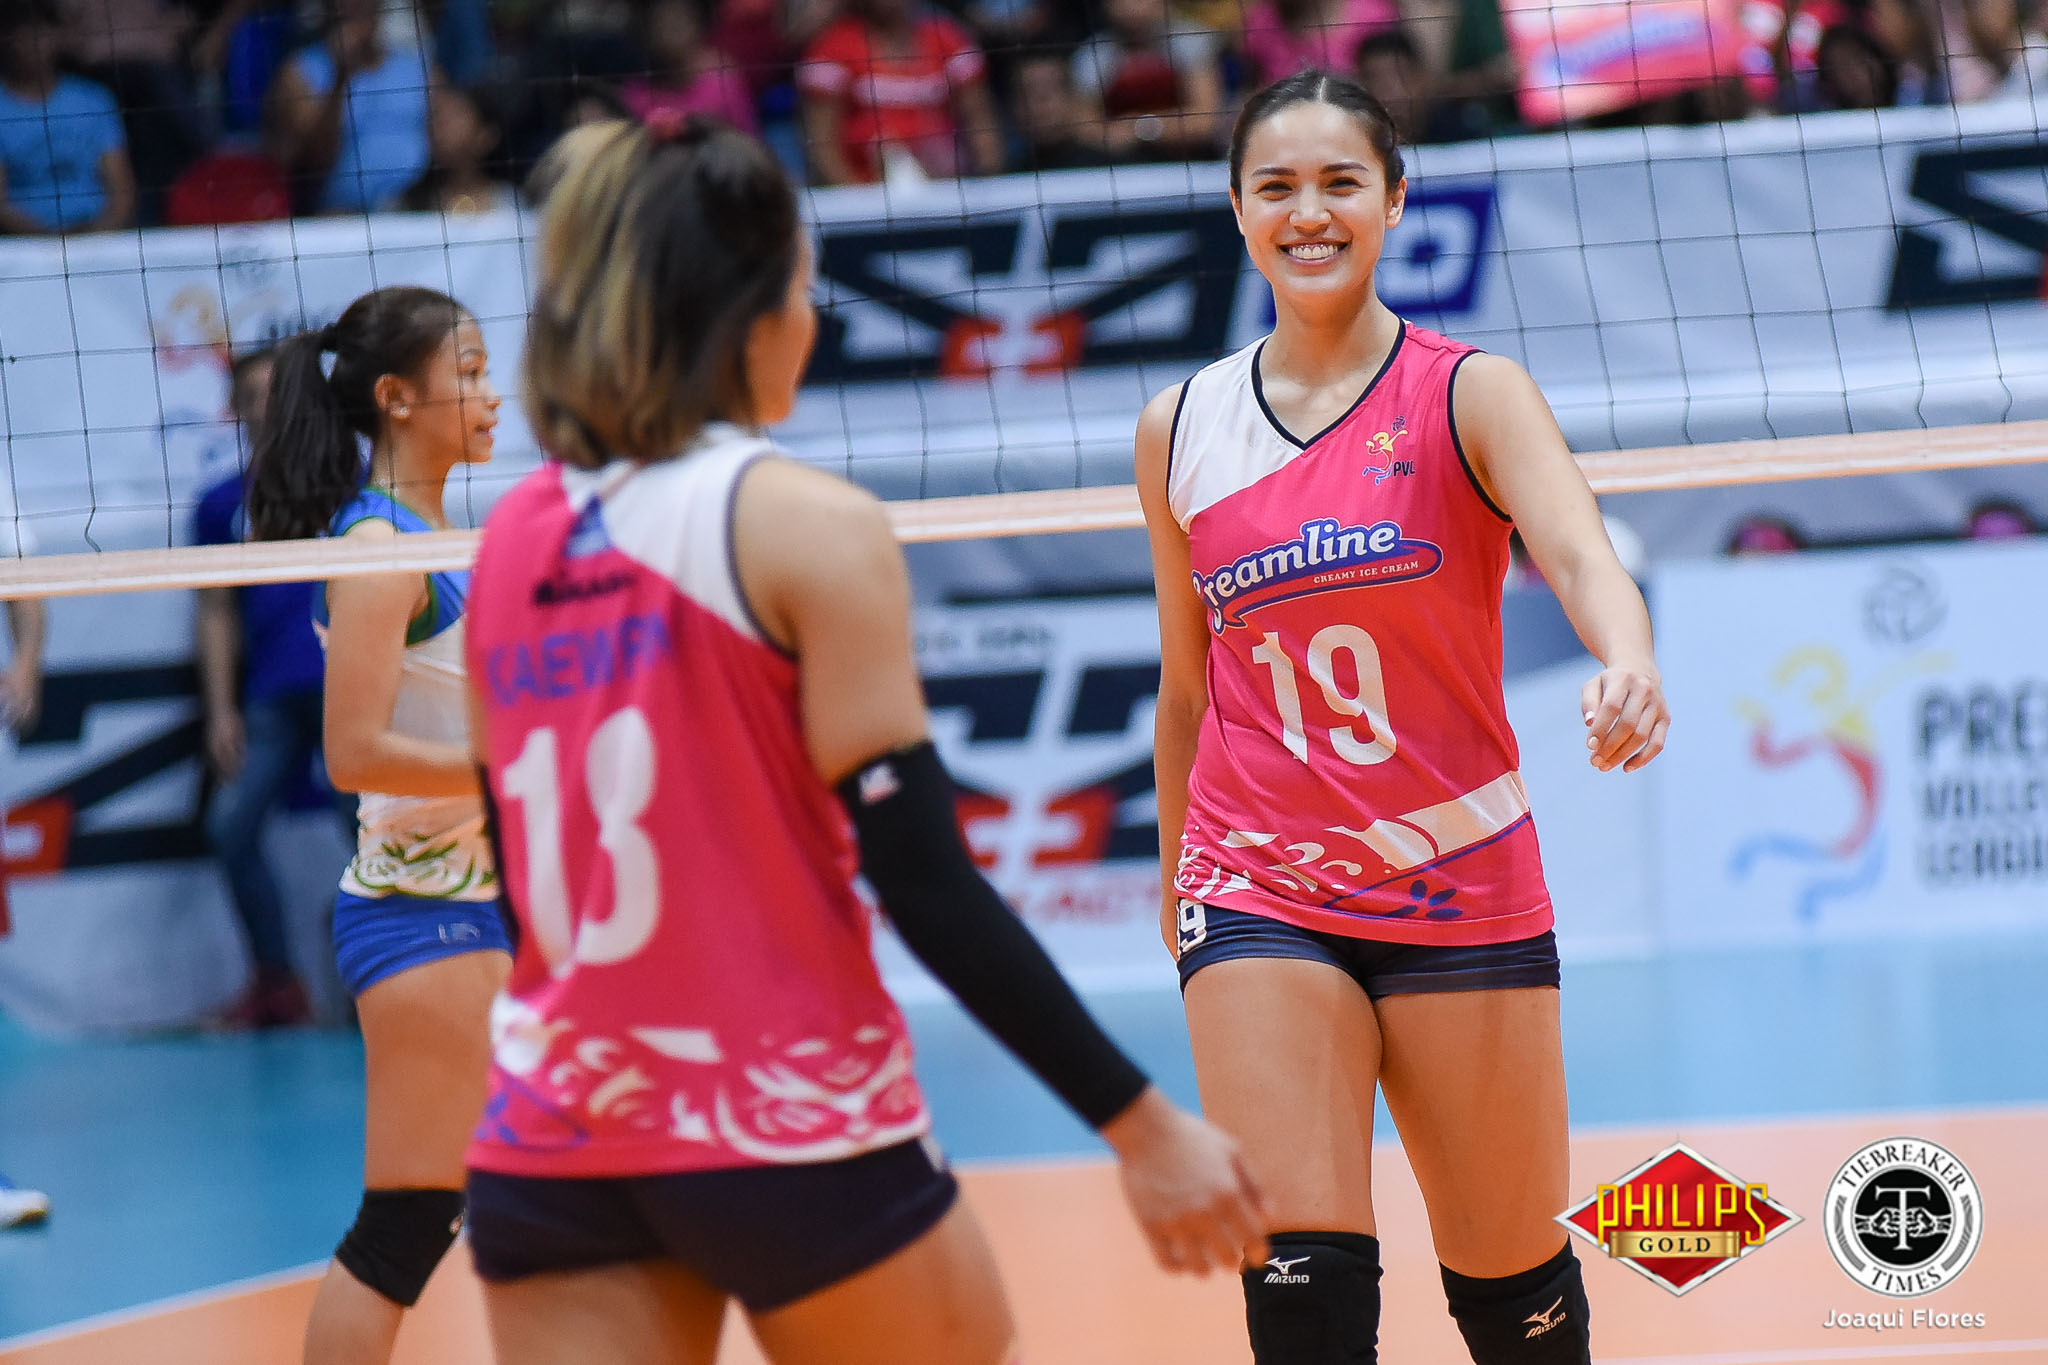 Tiebreaker Times Creamline bounces back against Pocari Sweat-Air Force, forces win-or-go-home News PVL Volleyball  Tai Bundit Pocari Sweat-Air Force Lady Warriors Myle Pablo Michele Gumabao Melissa Gohing Madeleine Palmer Kutika Kaewpin Jia Morado Jasper Jimenez Creamline Cool Smashers Alyssa Valdez 2018 PVL Women's Reinforced Conference 2018 PVL Season